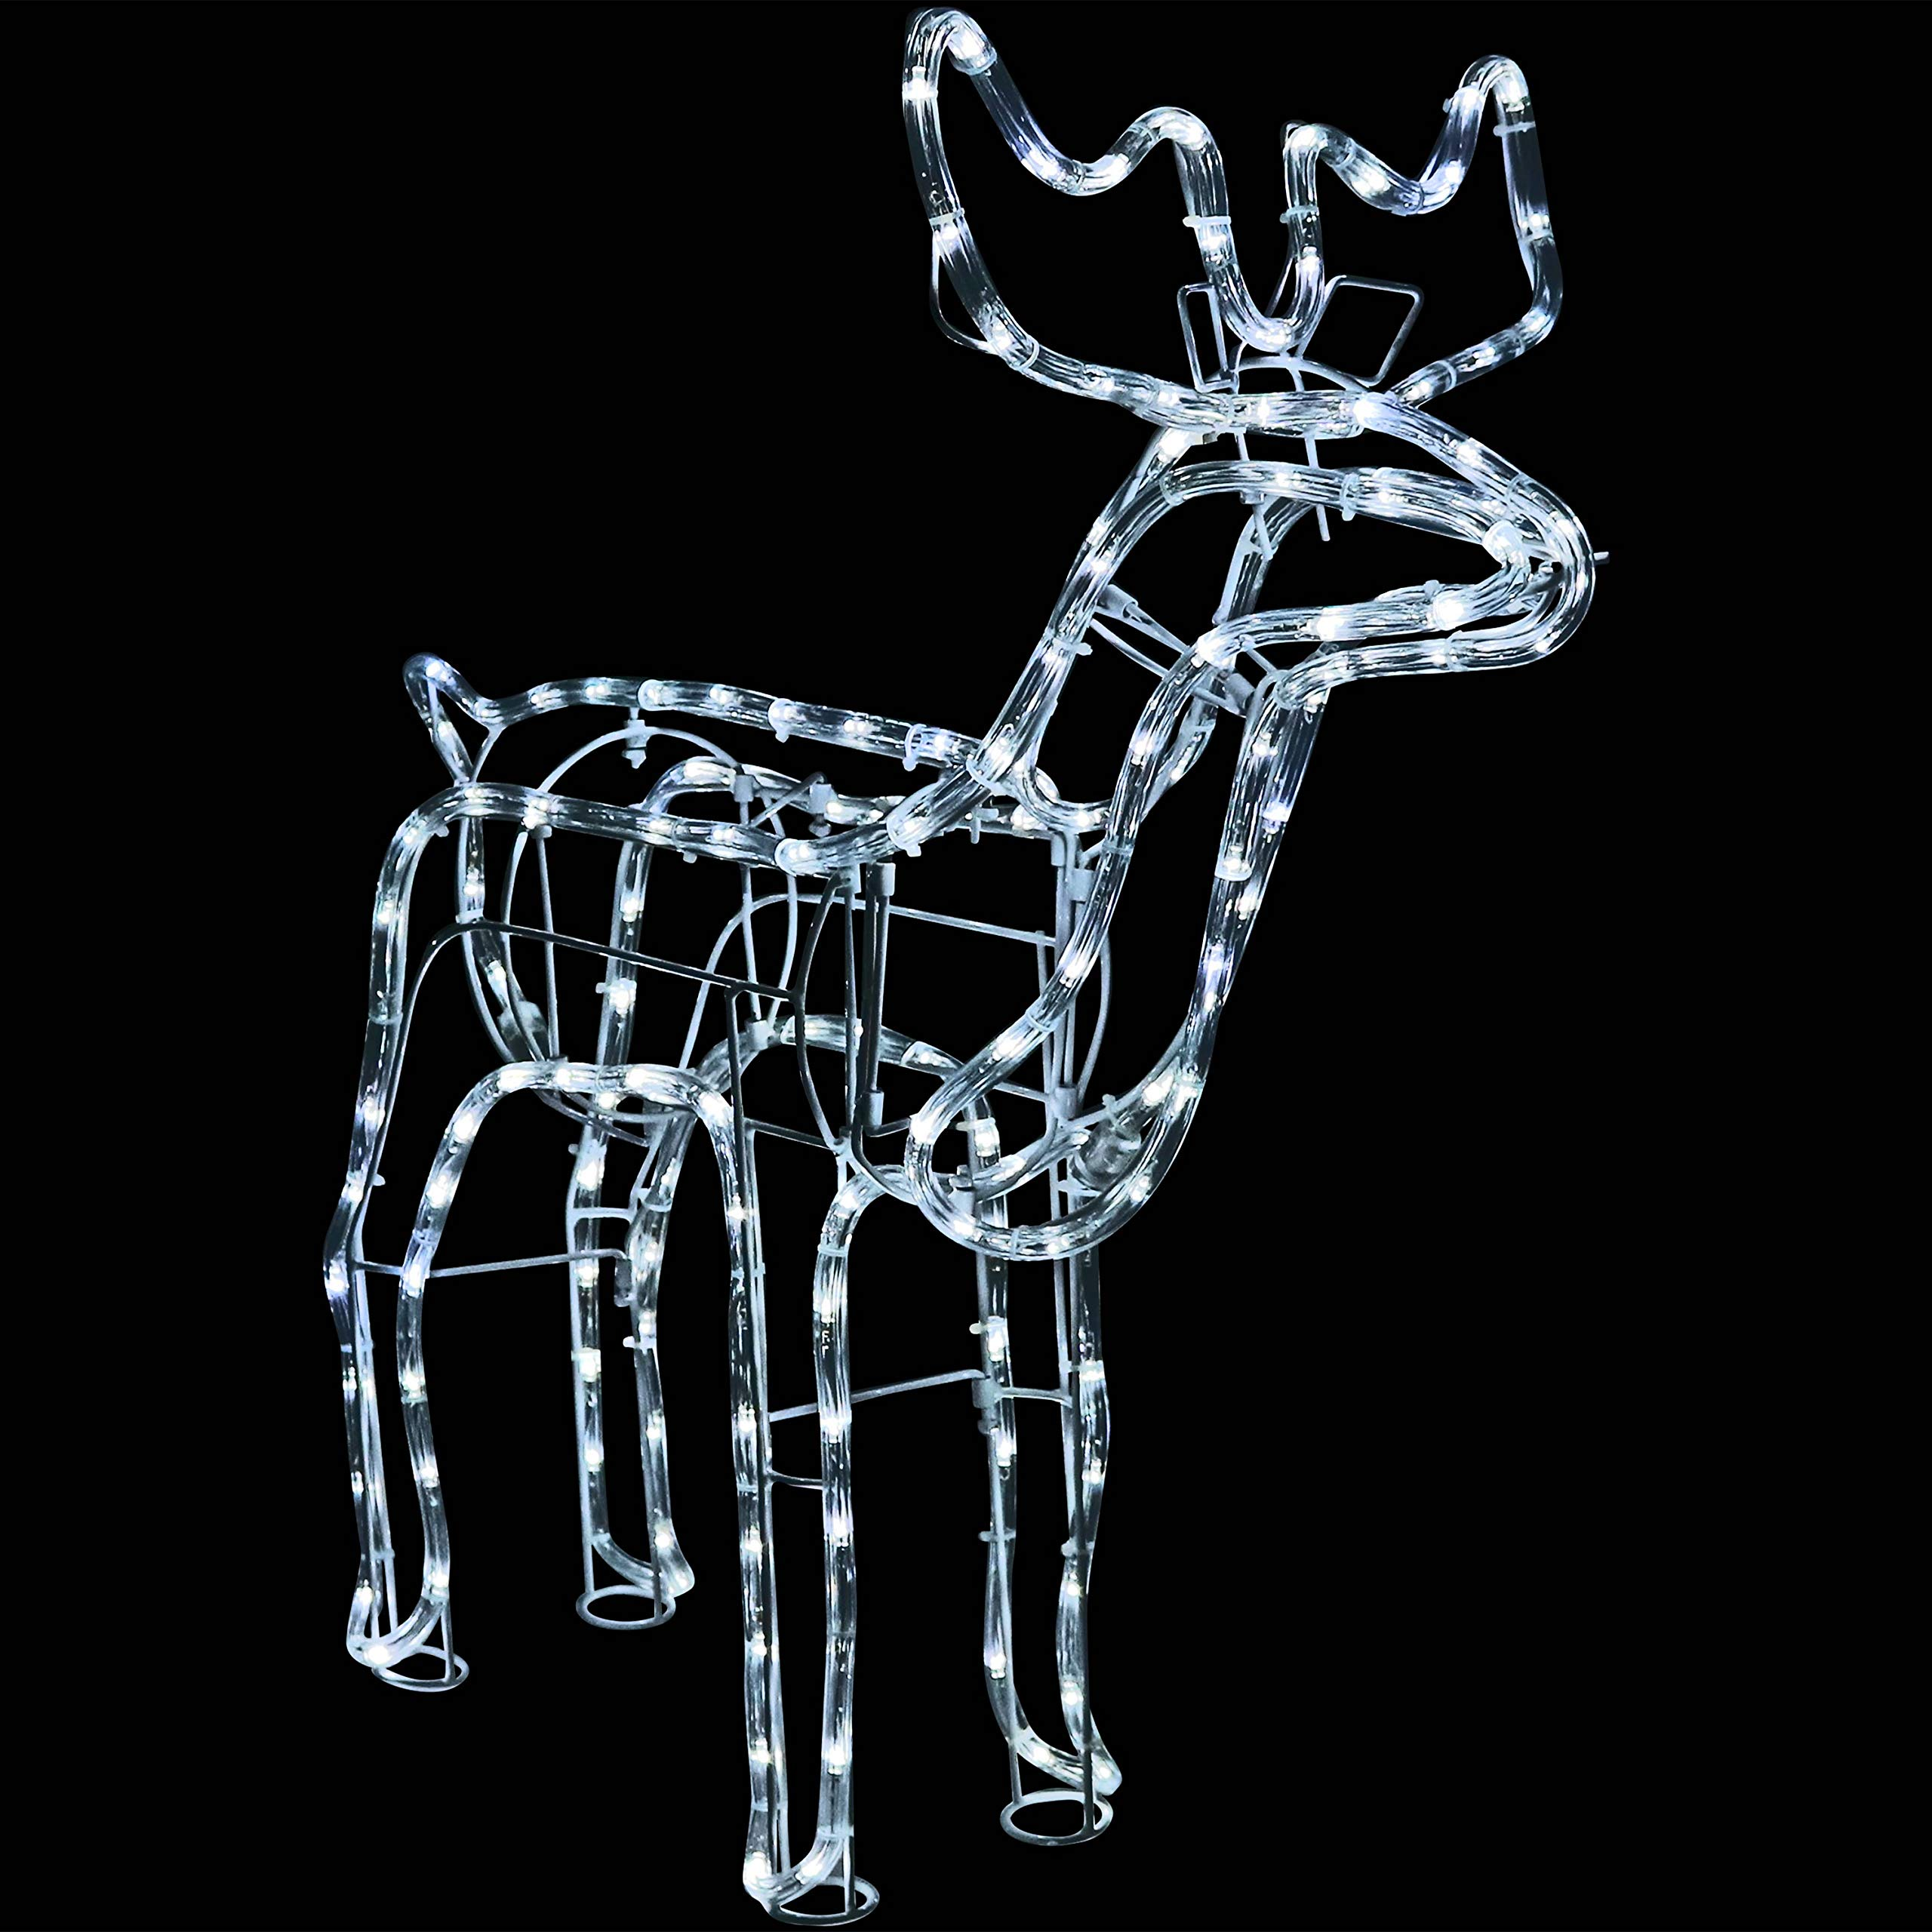 Sunnydaze Christmas Standing Deer White LED Light Display, Indoor & Outdoor Holiday Decoration Lights, 27-Inch Height